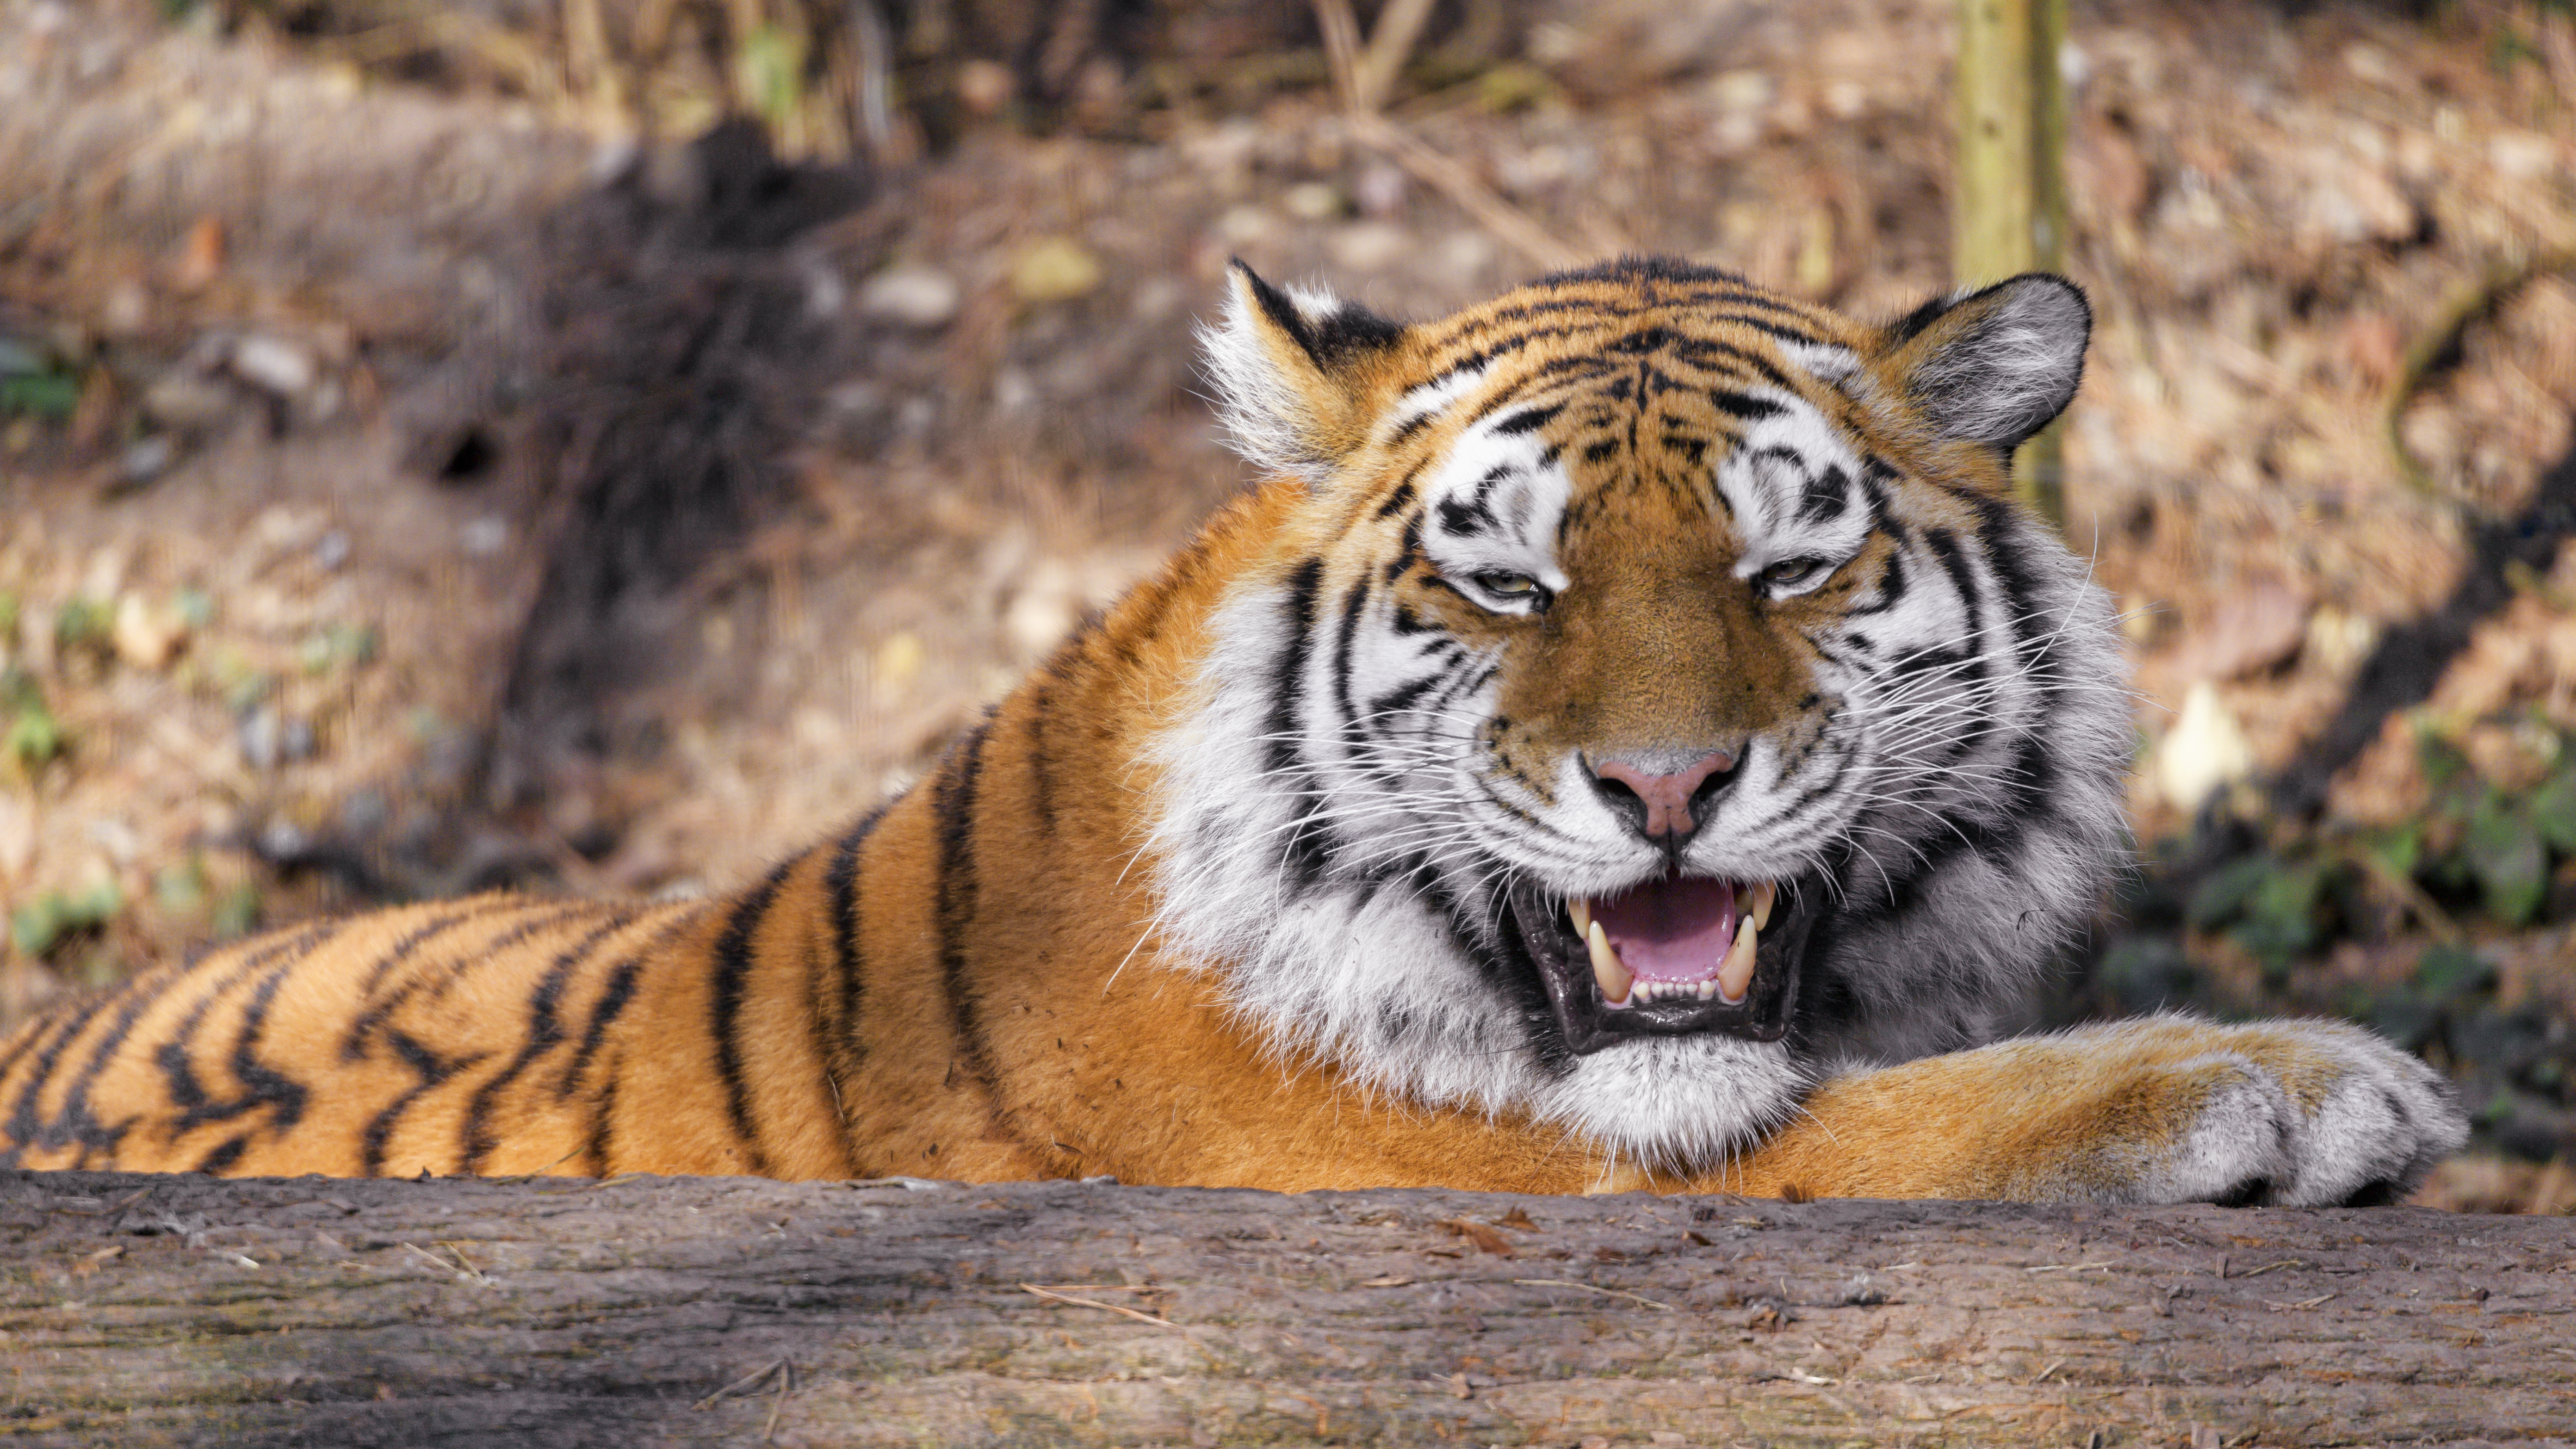 128910 download wallpaper Animals, Tiger, Predator, Animal, Fangs, Big Cat screensavers and pictures for free